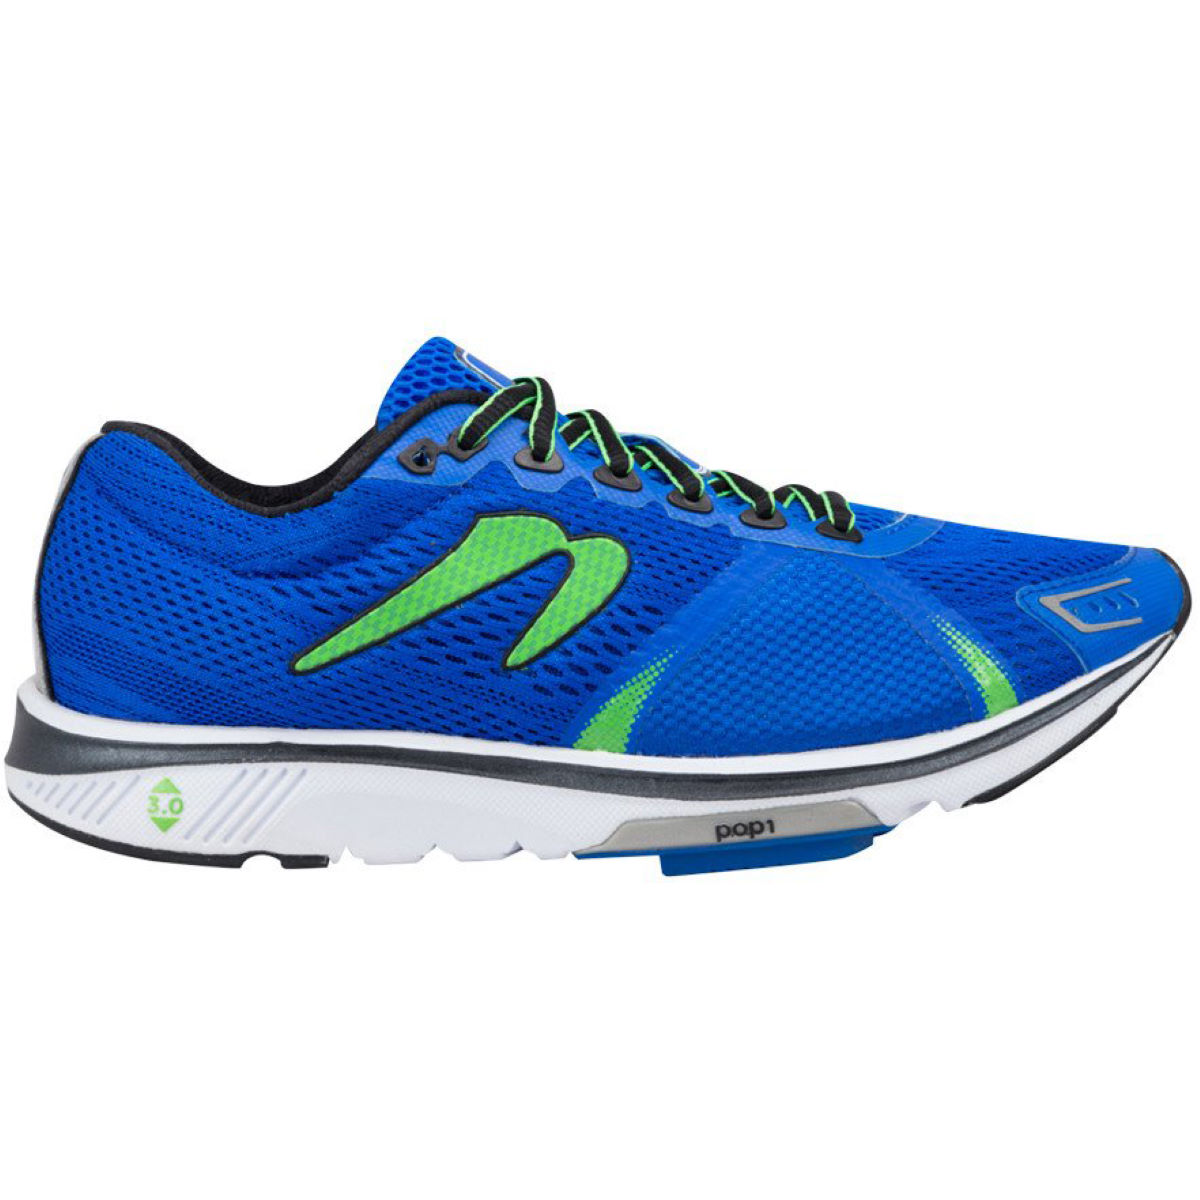 Chaussures Newton Running Shoes Gravity VI - 11,5 UK Bleu Chaussures de running amorties